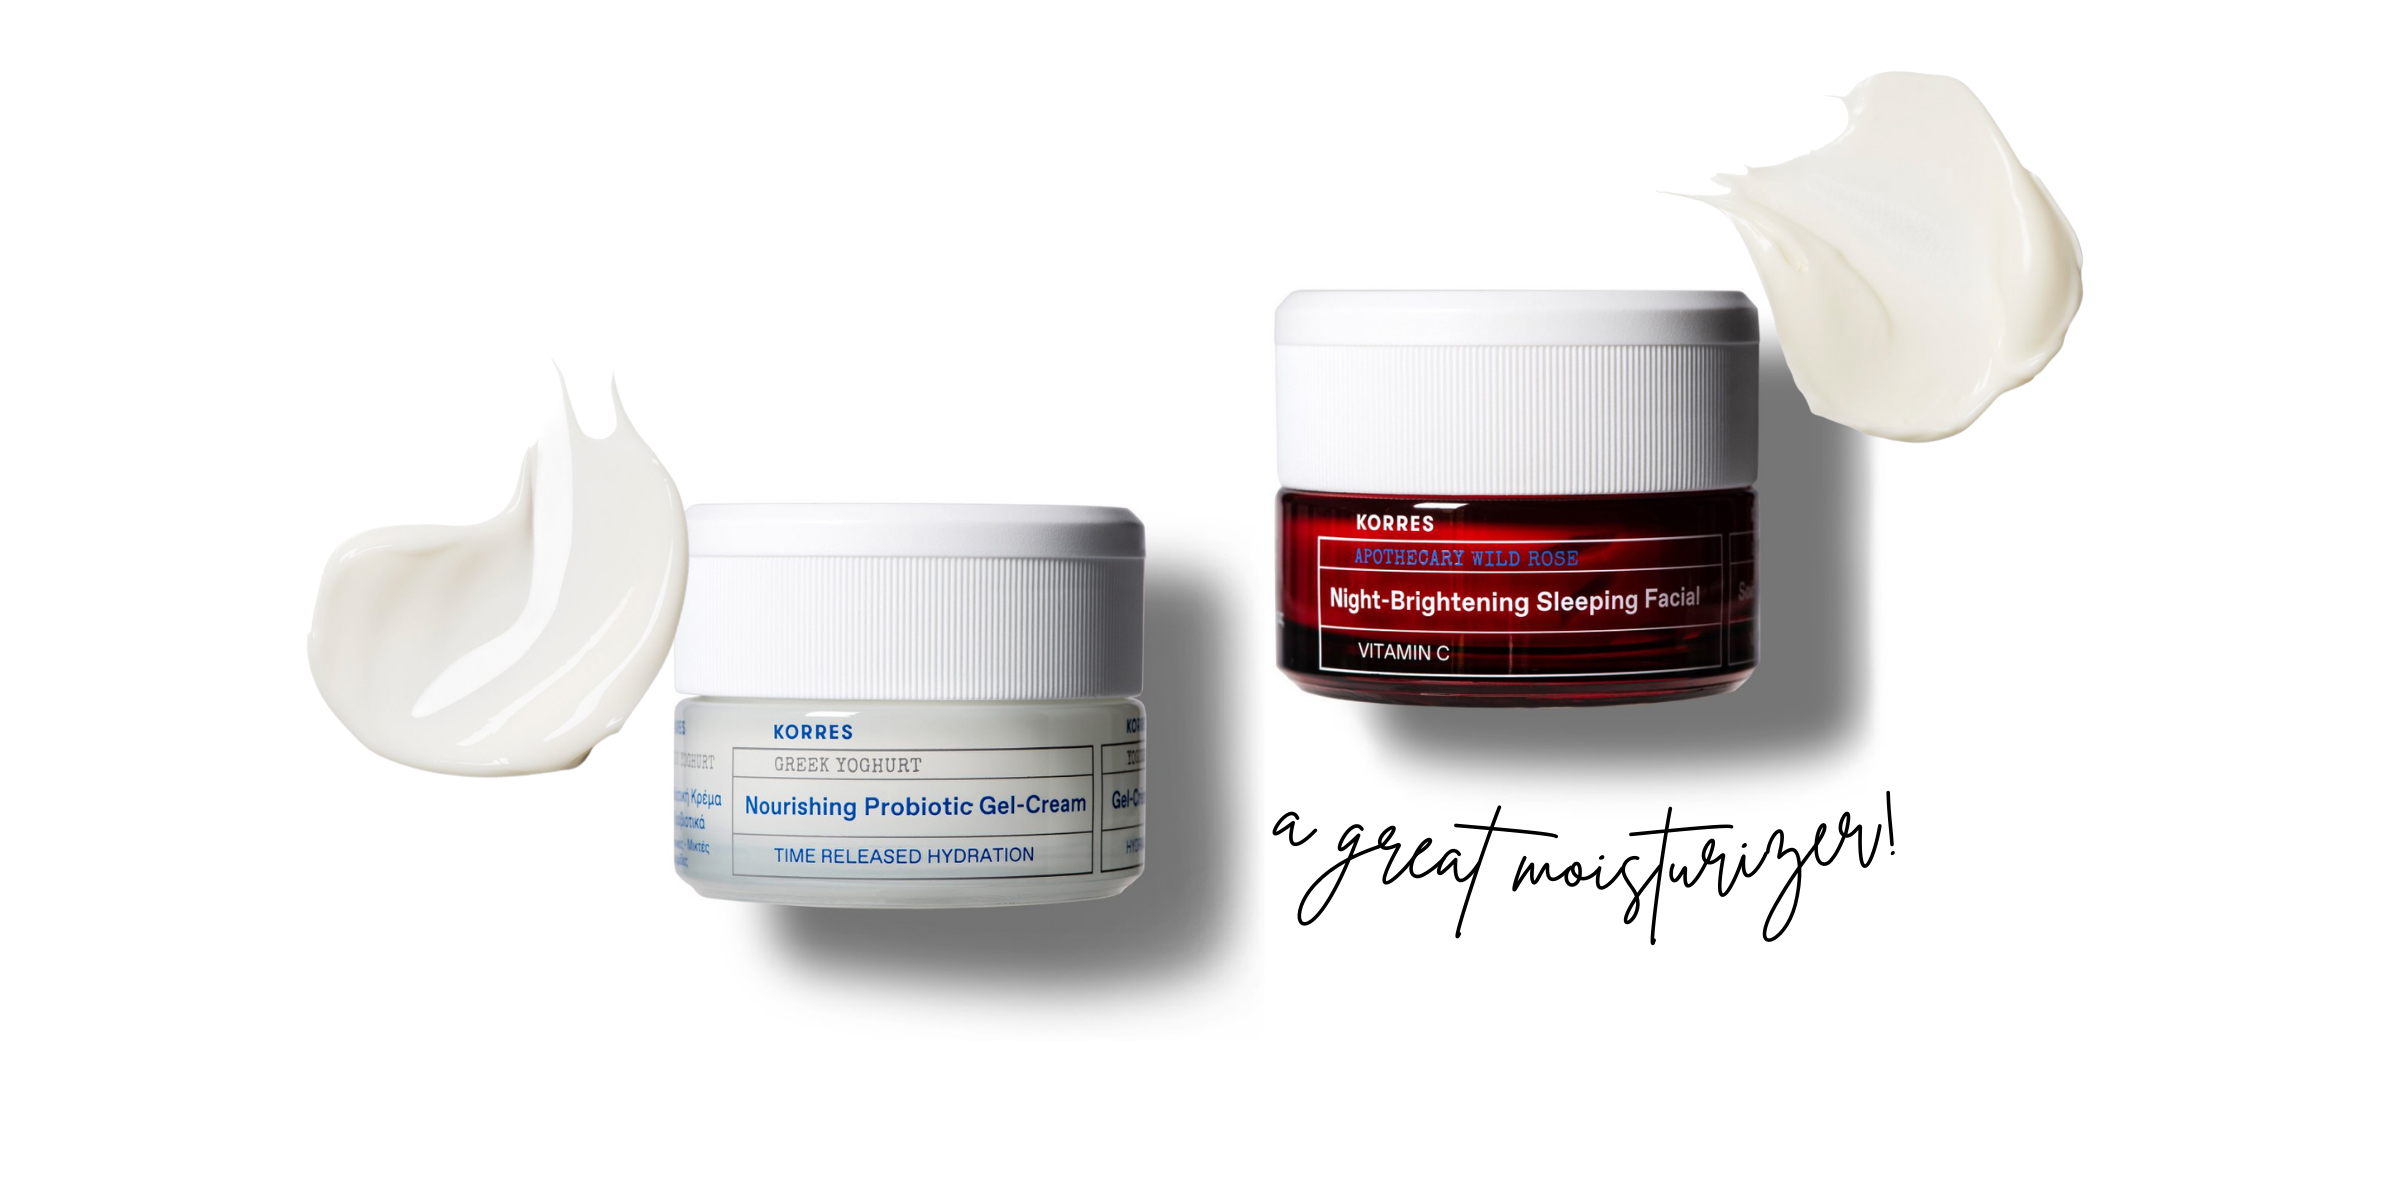 moisturisers for your skincare travel kit that are amazing from Korres